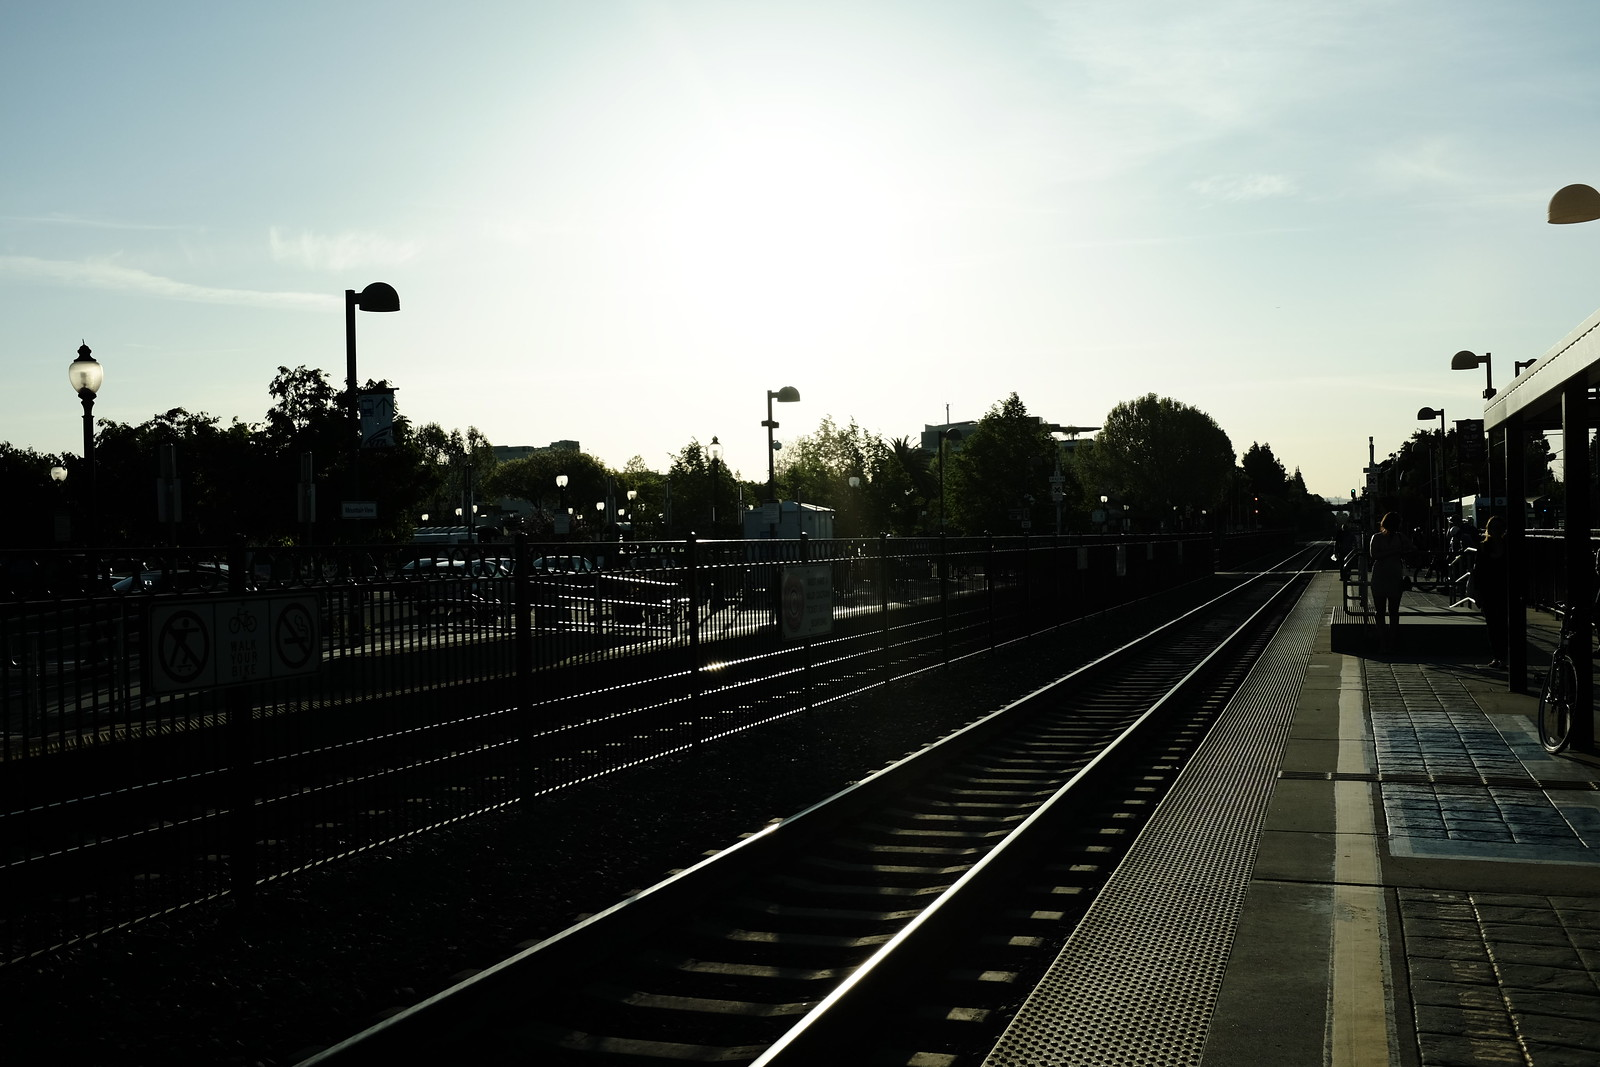 The Mountain View station of Caltrain in San Francisco by FUJIFILM X100S.